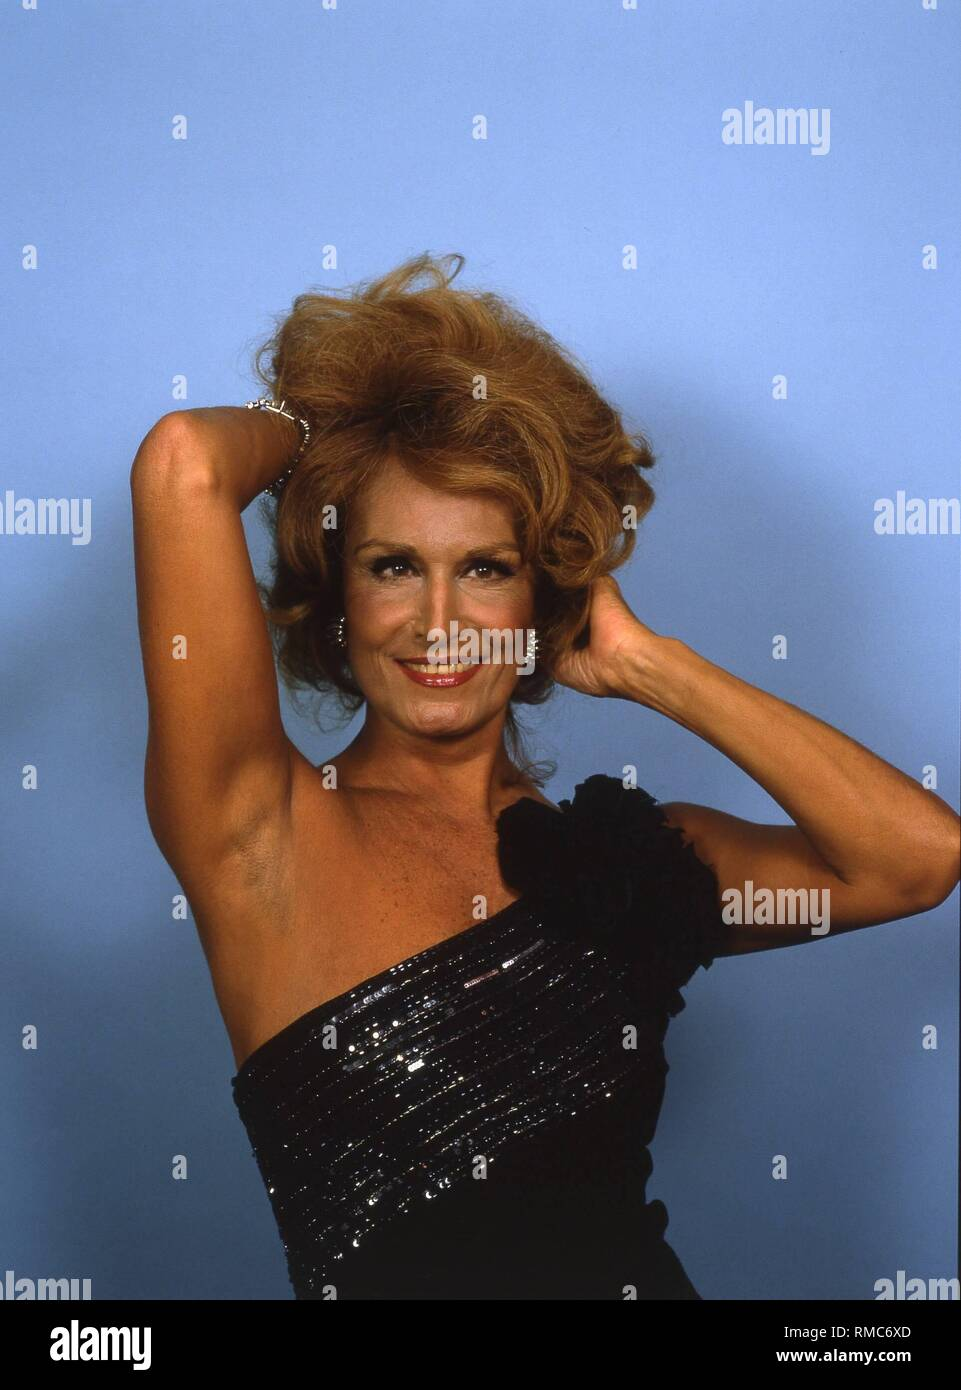 On January 17, 2003 the Italian singer and actress Dalida (photo) would have celebrated her 70th birthday. Her most famous hits include 'Ciao, ciao, Bambina' and 'The Day the Rains Came' (both 1959). Dalida, real name Yolande Gigliotti, was the daughter of Italian violinist Pietro Gigliotti. She spent her youth in Egypt, where she was elected 'Miss Egypt' in 1954. Subsequently, she moved to Paris and became successful in show business since 1956. On May 3, 1987, she was found dead in her Parisian apartment. According to the police, she died of an overdose of sleeping pills. - Stock Image